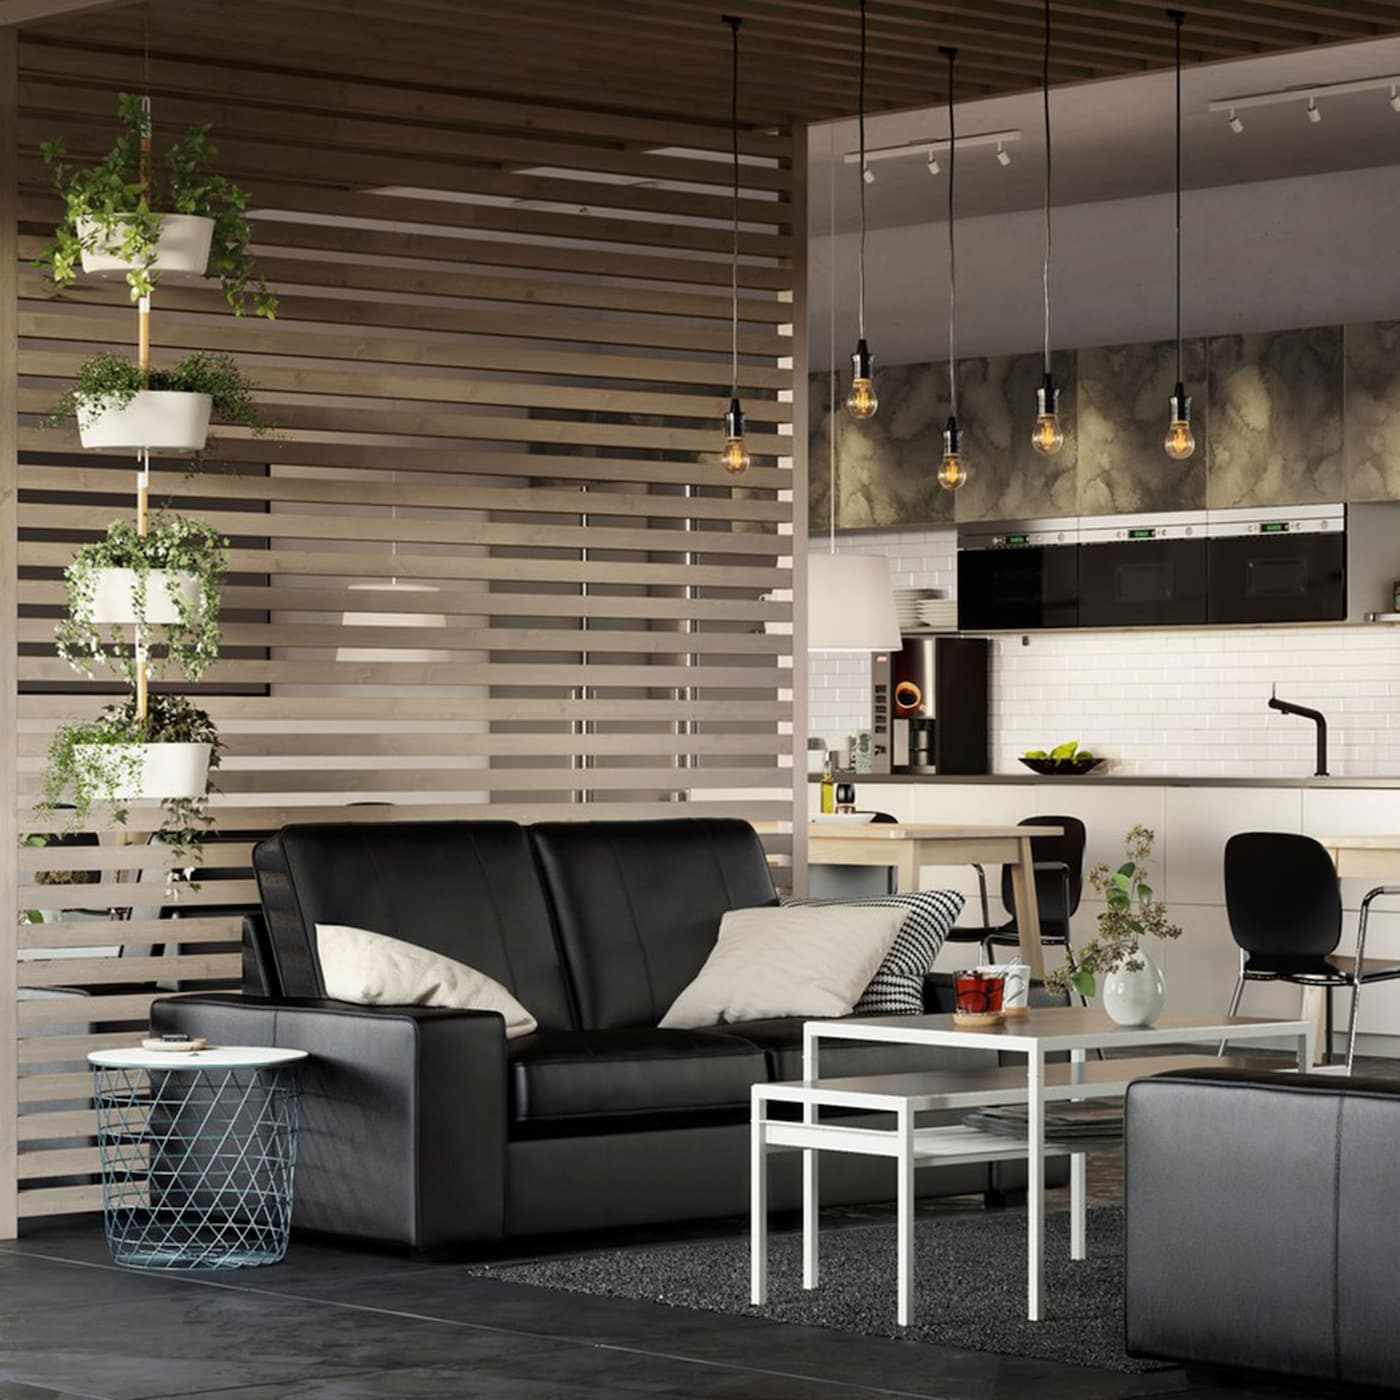 A large airy business office space with IKEA KIVIK black leather sofas and slatted wood room dividers.